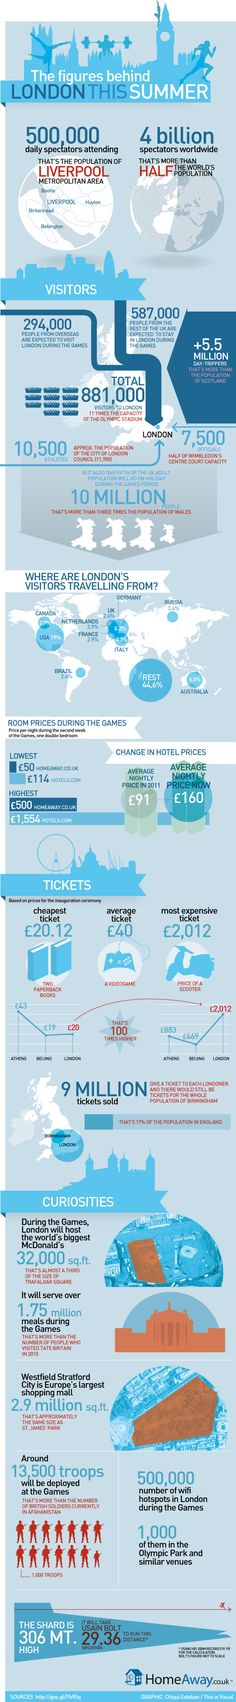 London Olympics Tourism In Staggering Stats - via HuffPostTravel & HomeAway